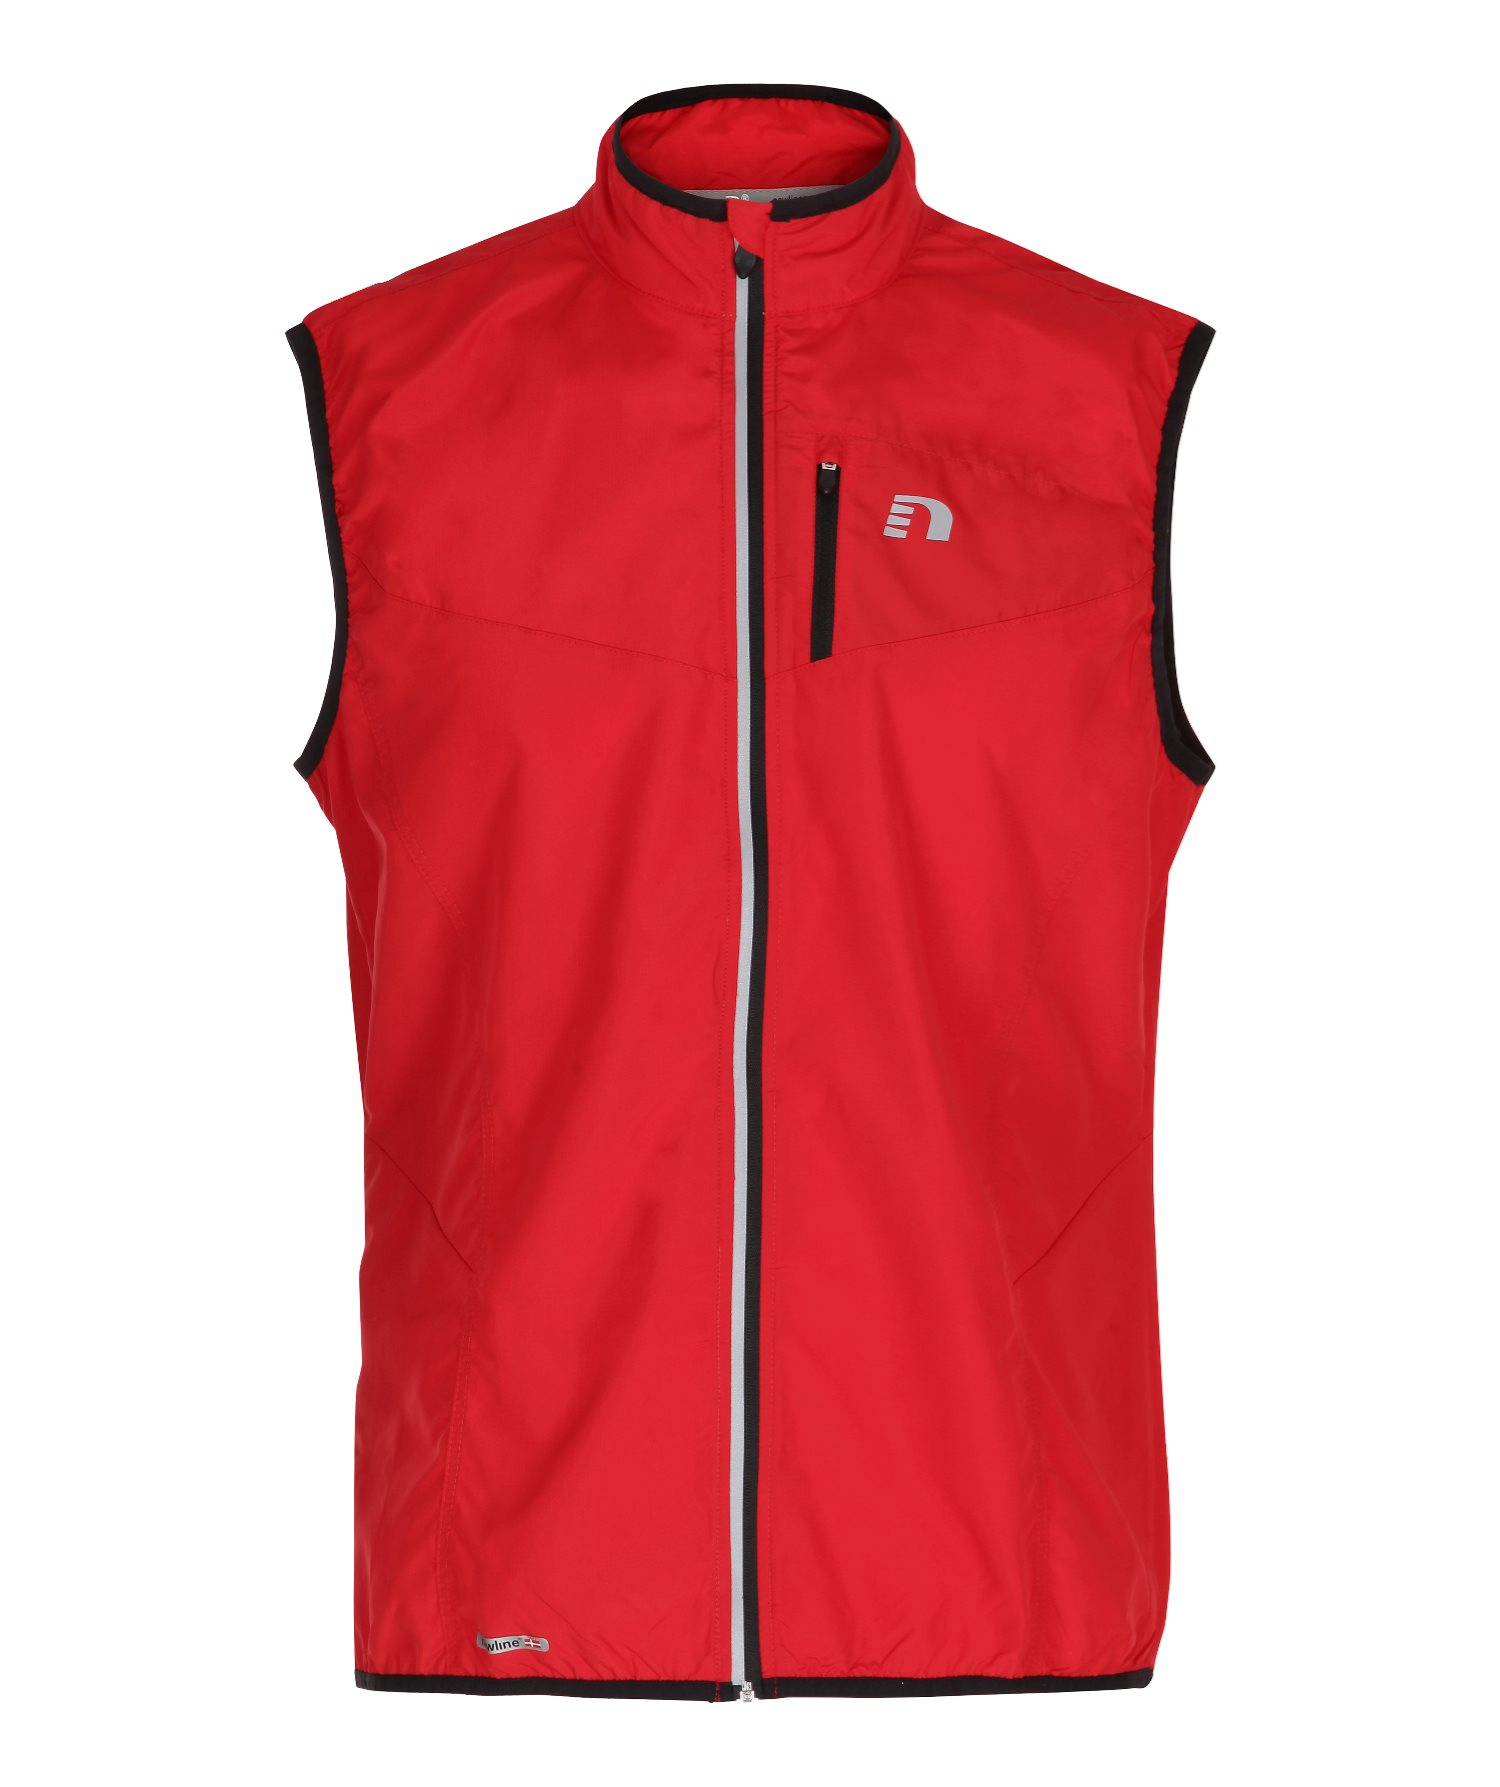 Newline Base Tech Vest - Herren